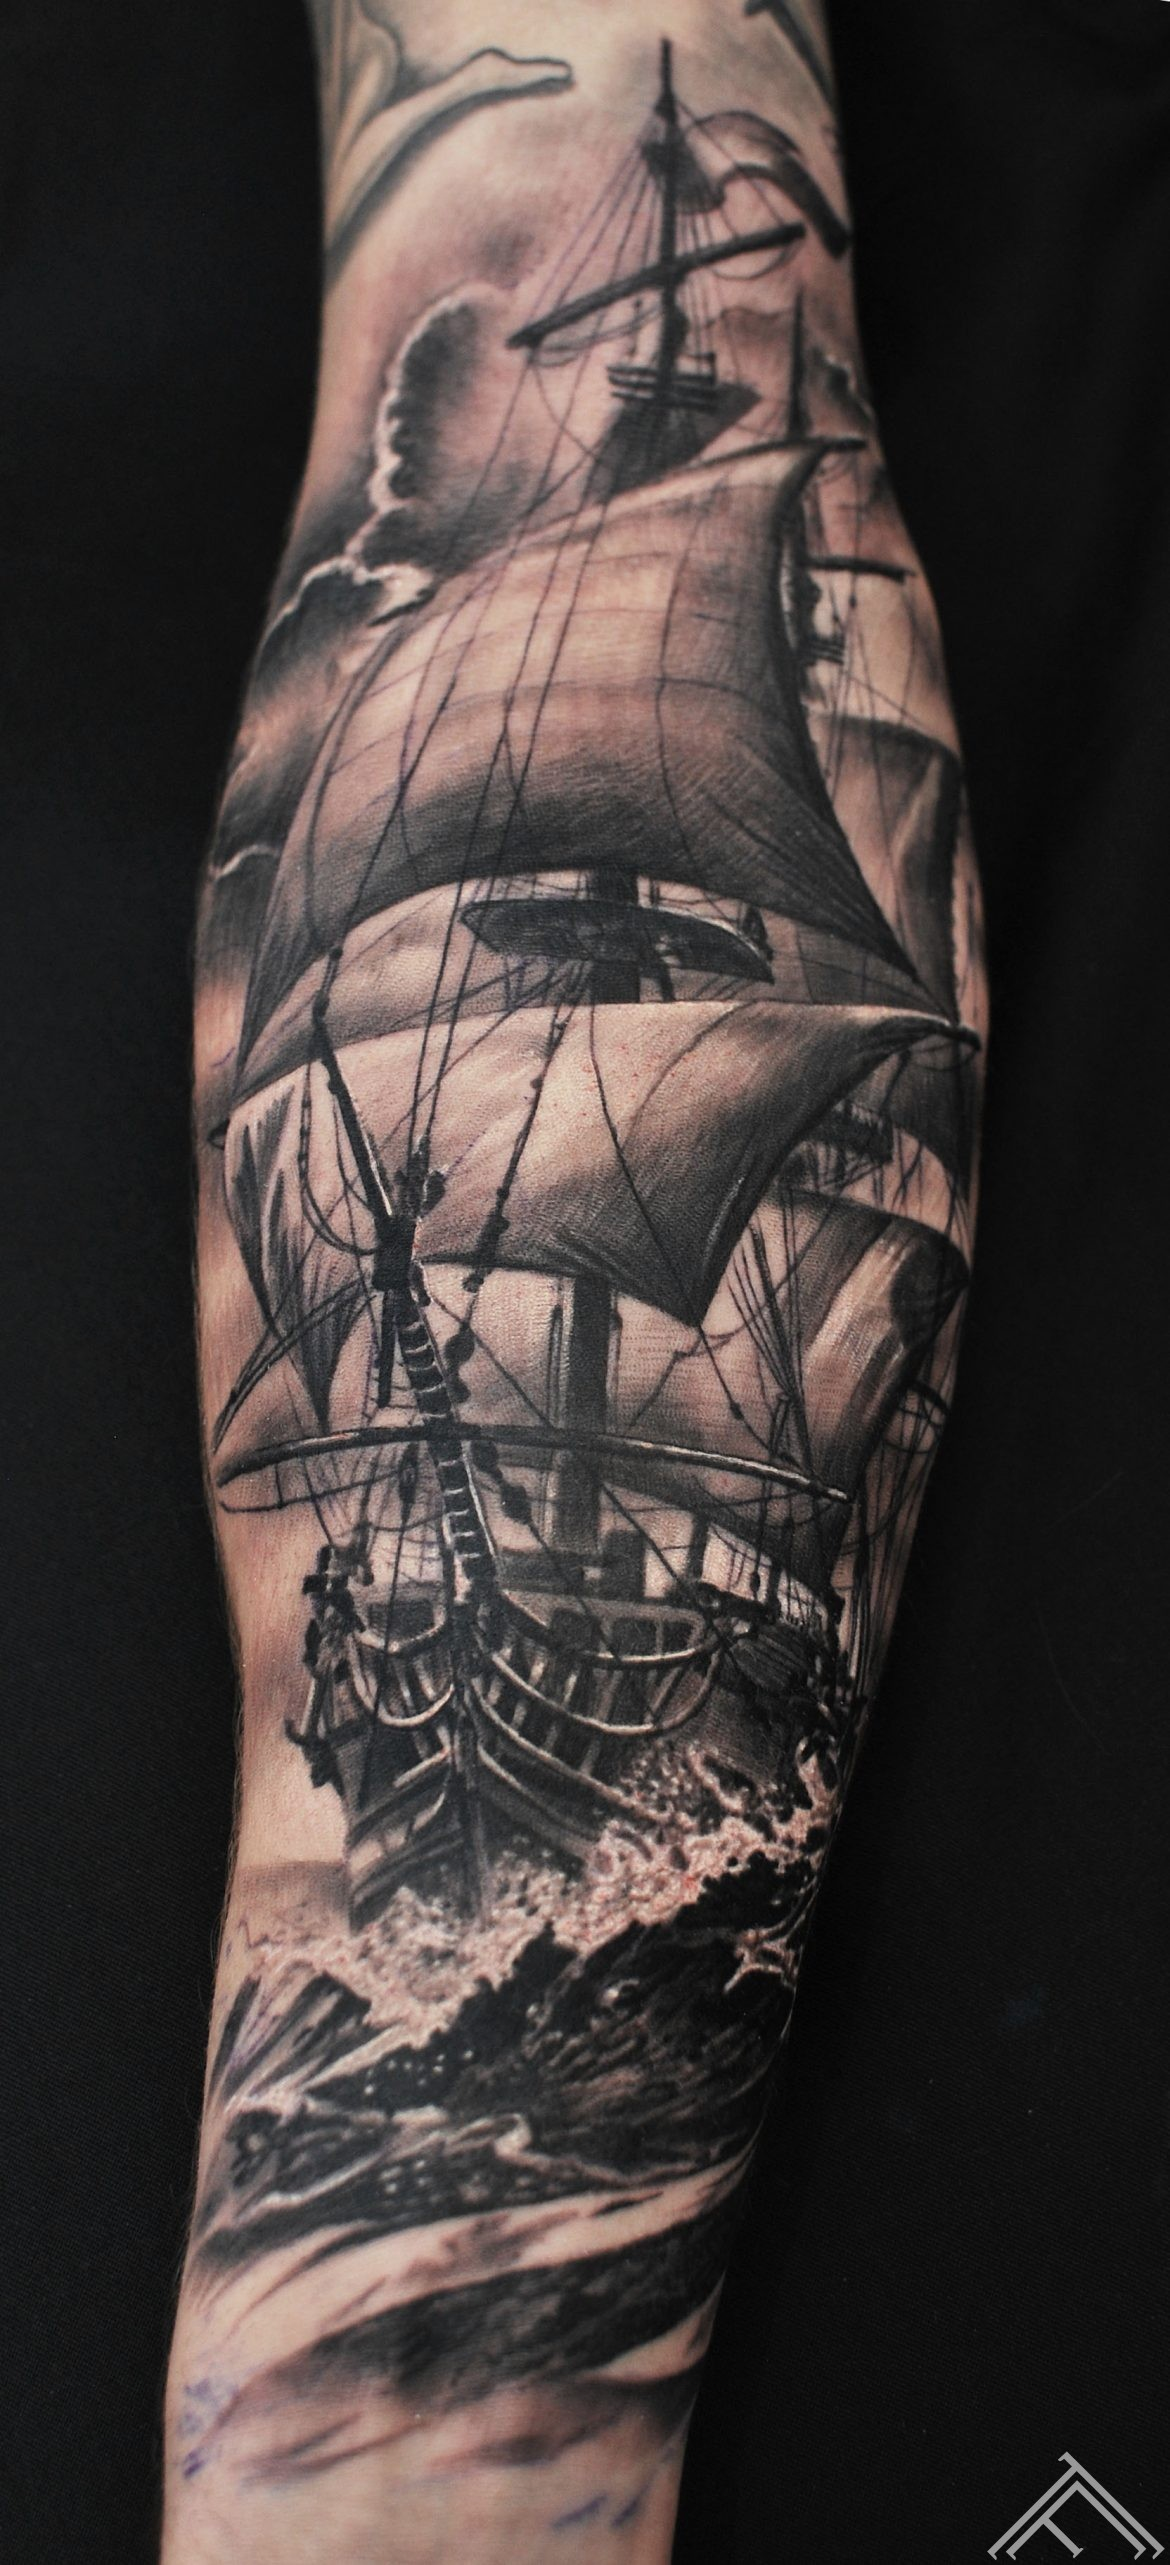 JoacimEriksson-ship-sailing-manofwar-sea-waves-ocean-marispavlo-tattoofrequency